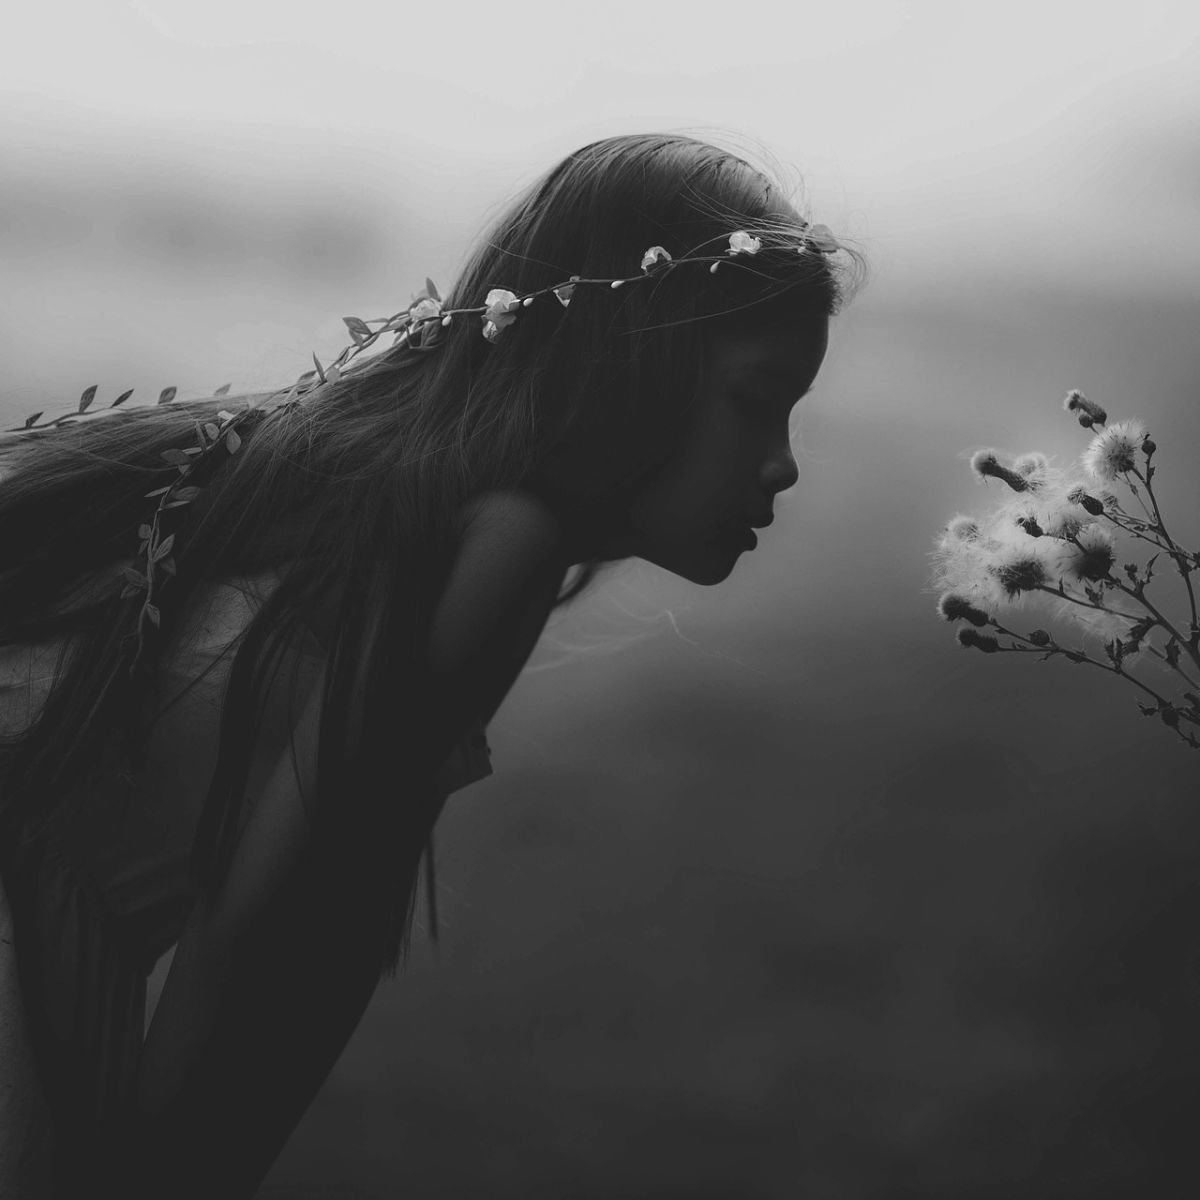 Young girl smells a flower, silhouette, black, white, mystic